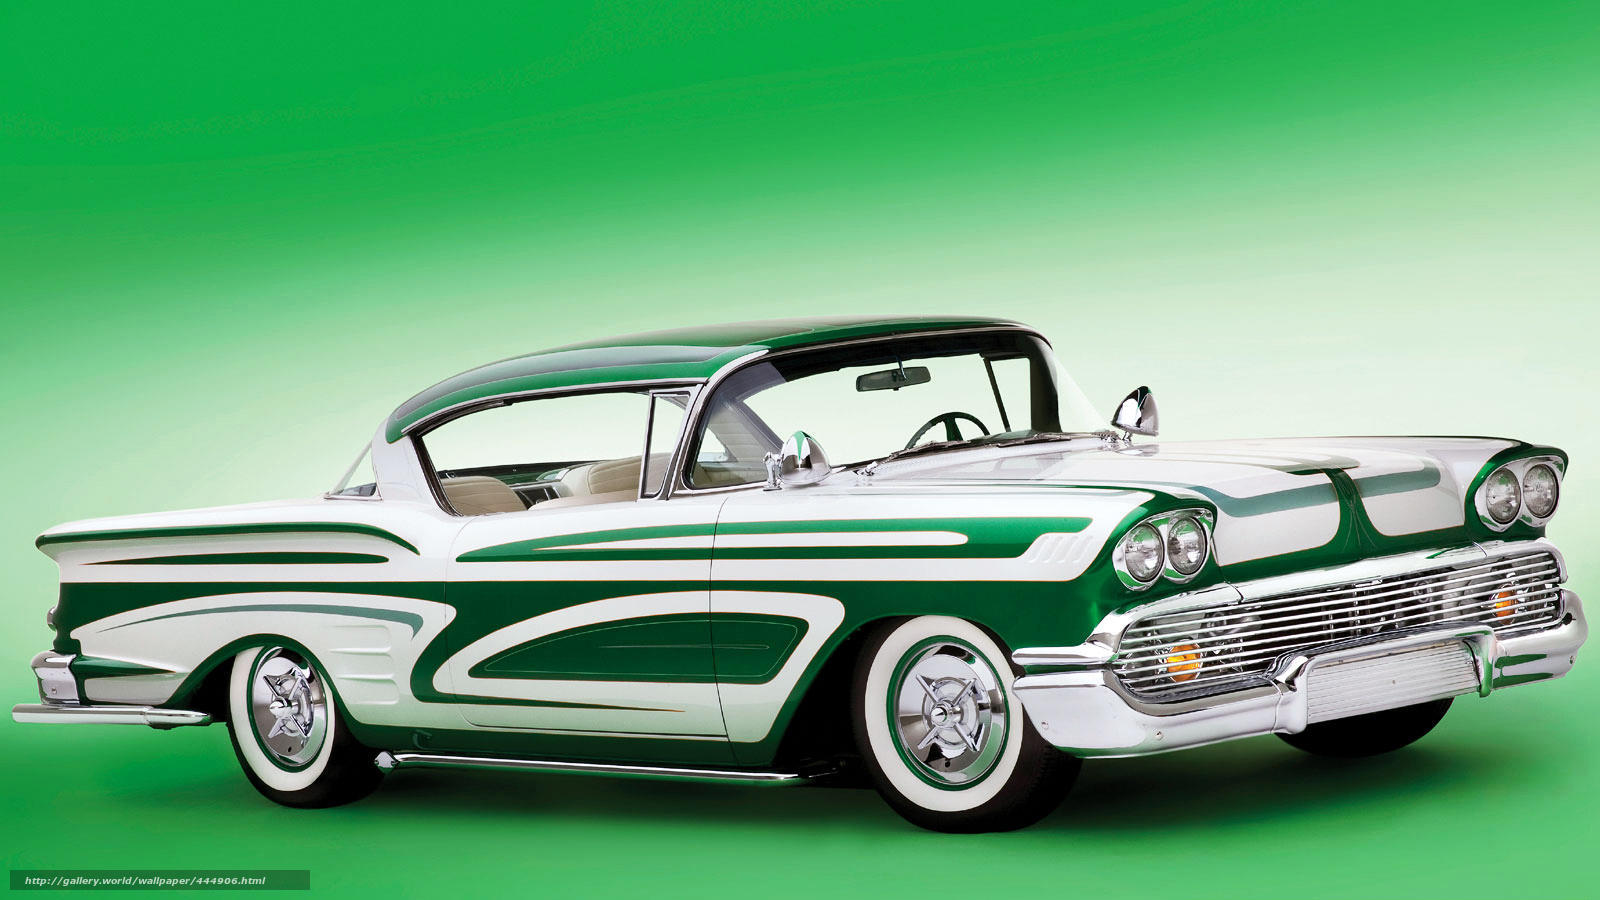 Download wallpaper Chevrolet Impala, green car, classic free desktop